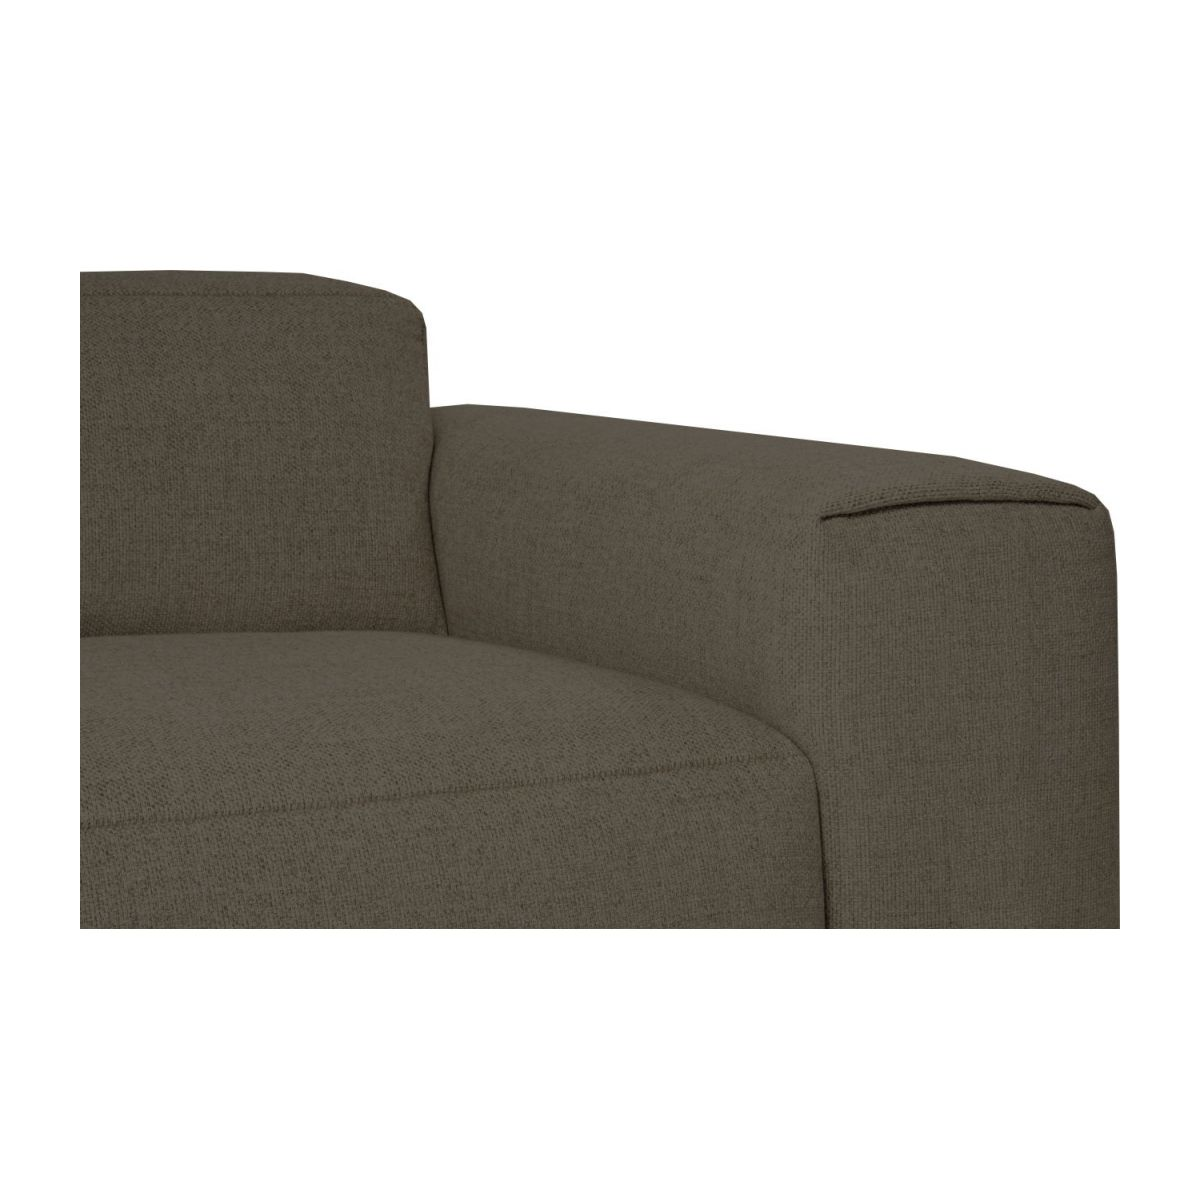 3 seater sofa in Lecce fabric, muscat n°6